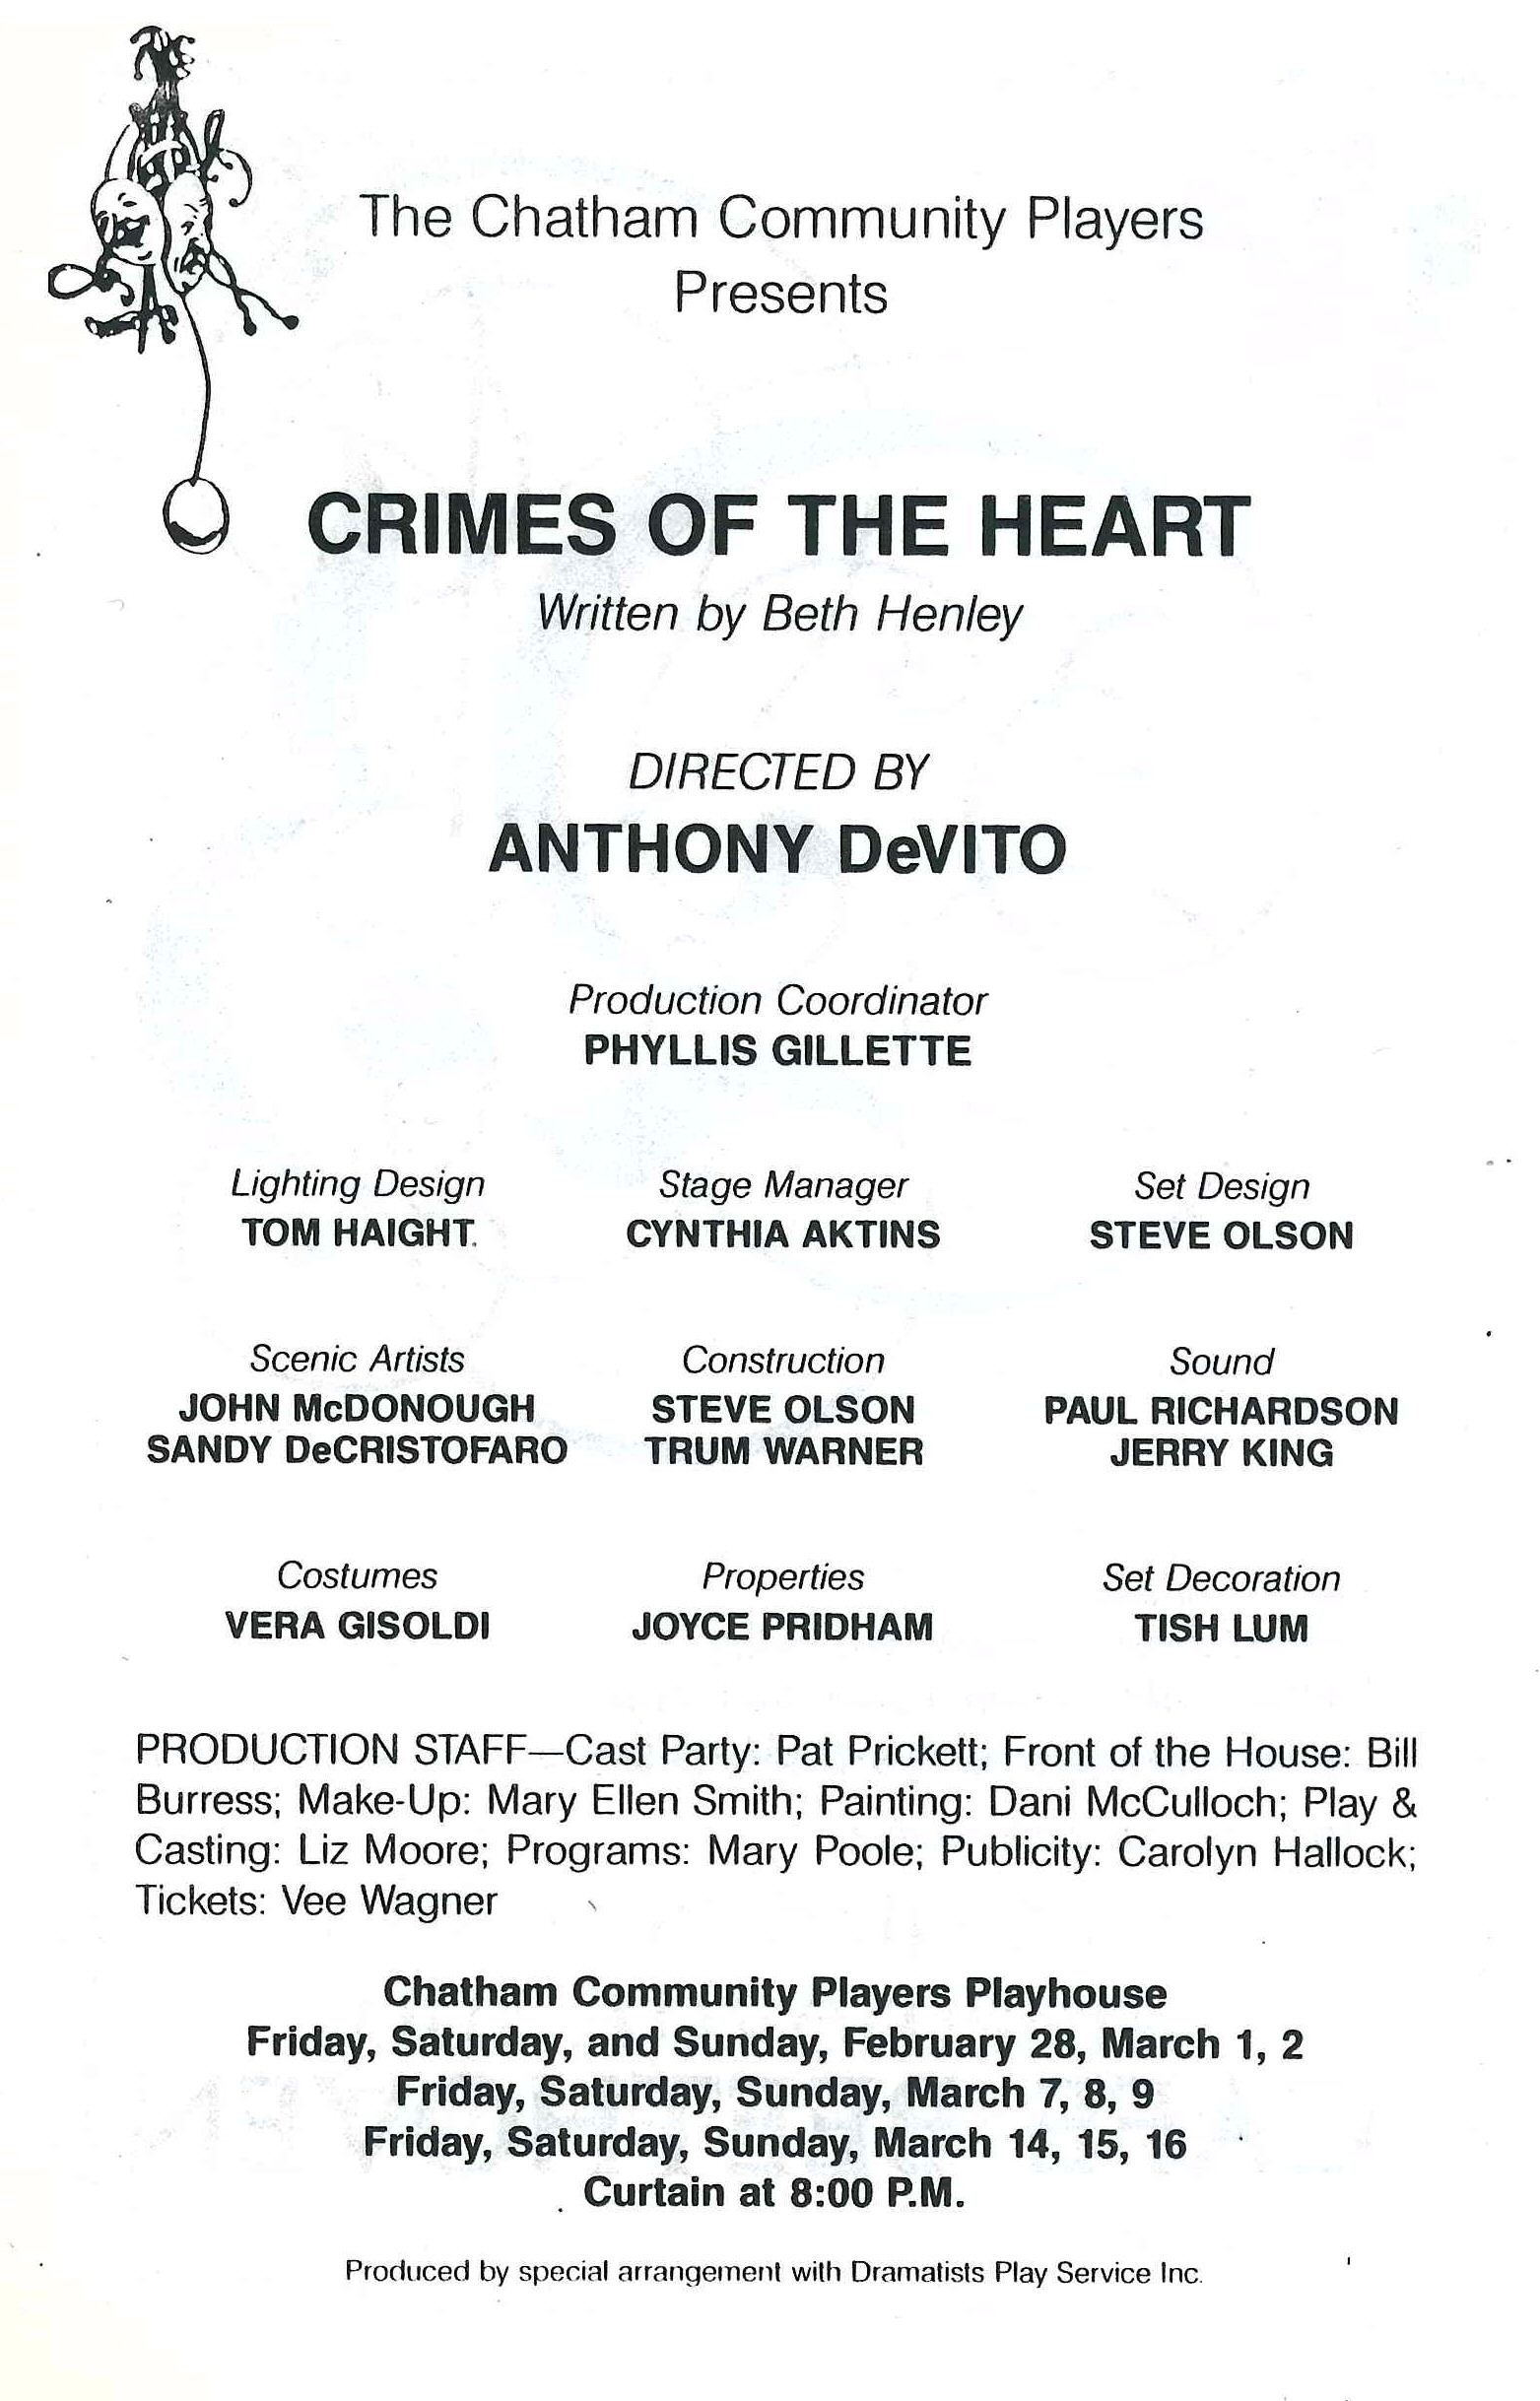 Crimes of the Heart (1985)